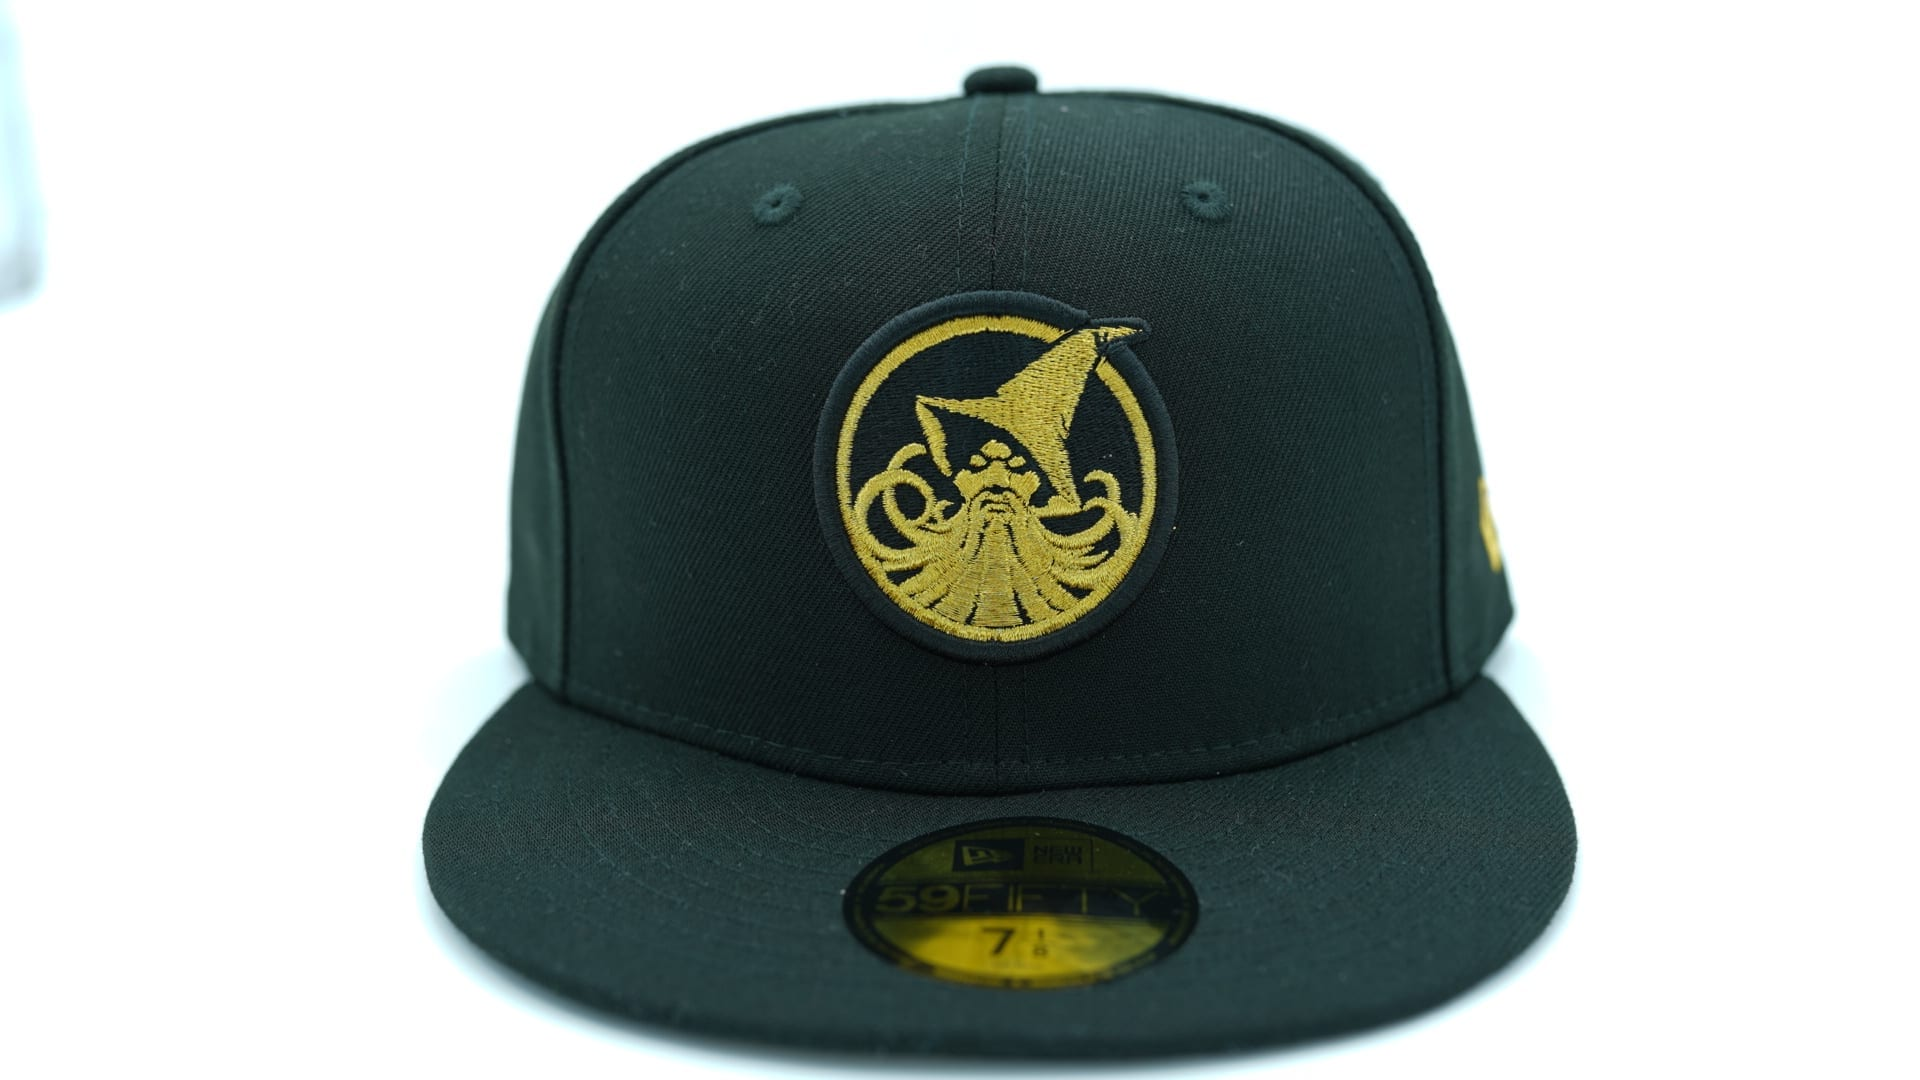 new fitteds hat club new era x wbc mexico m 59fifty cap